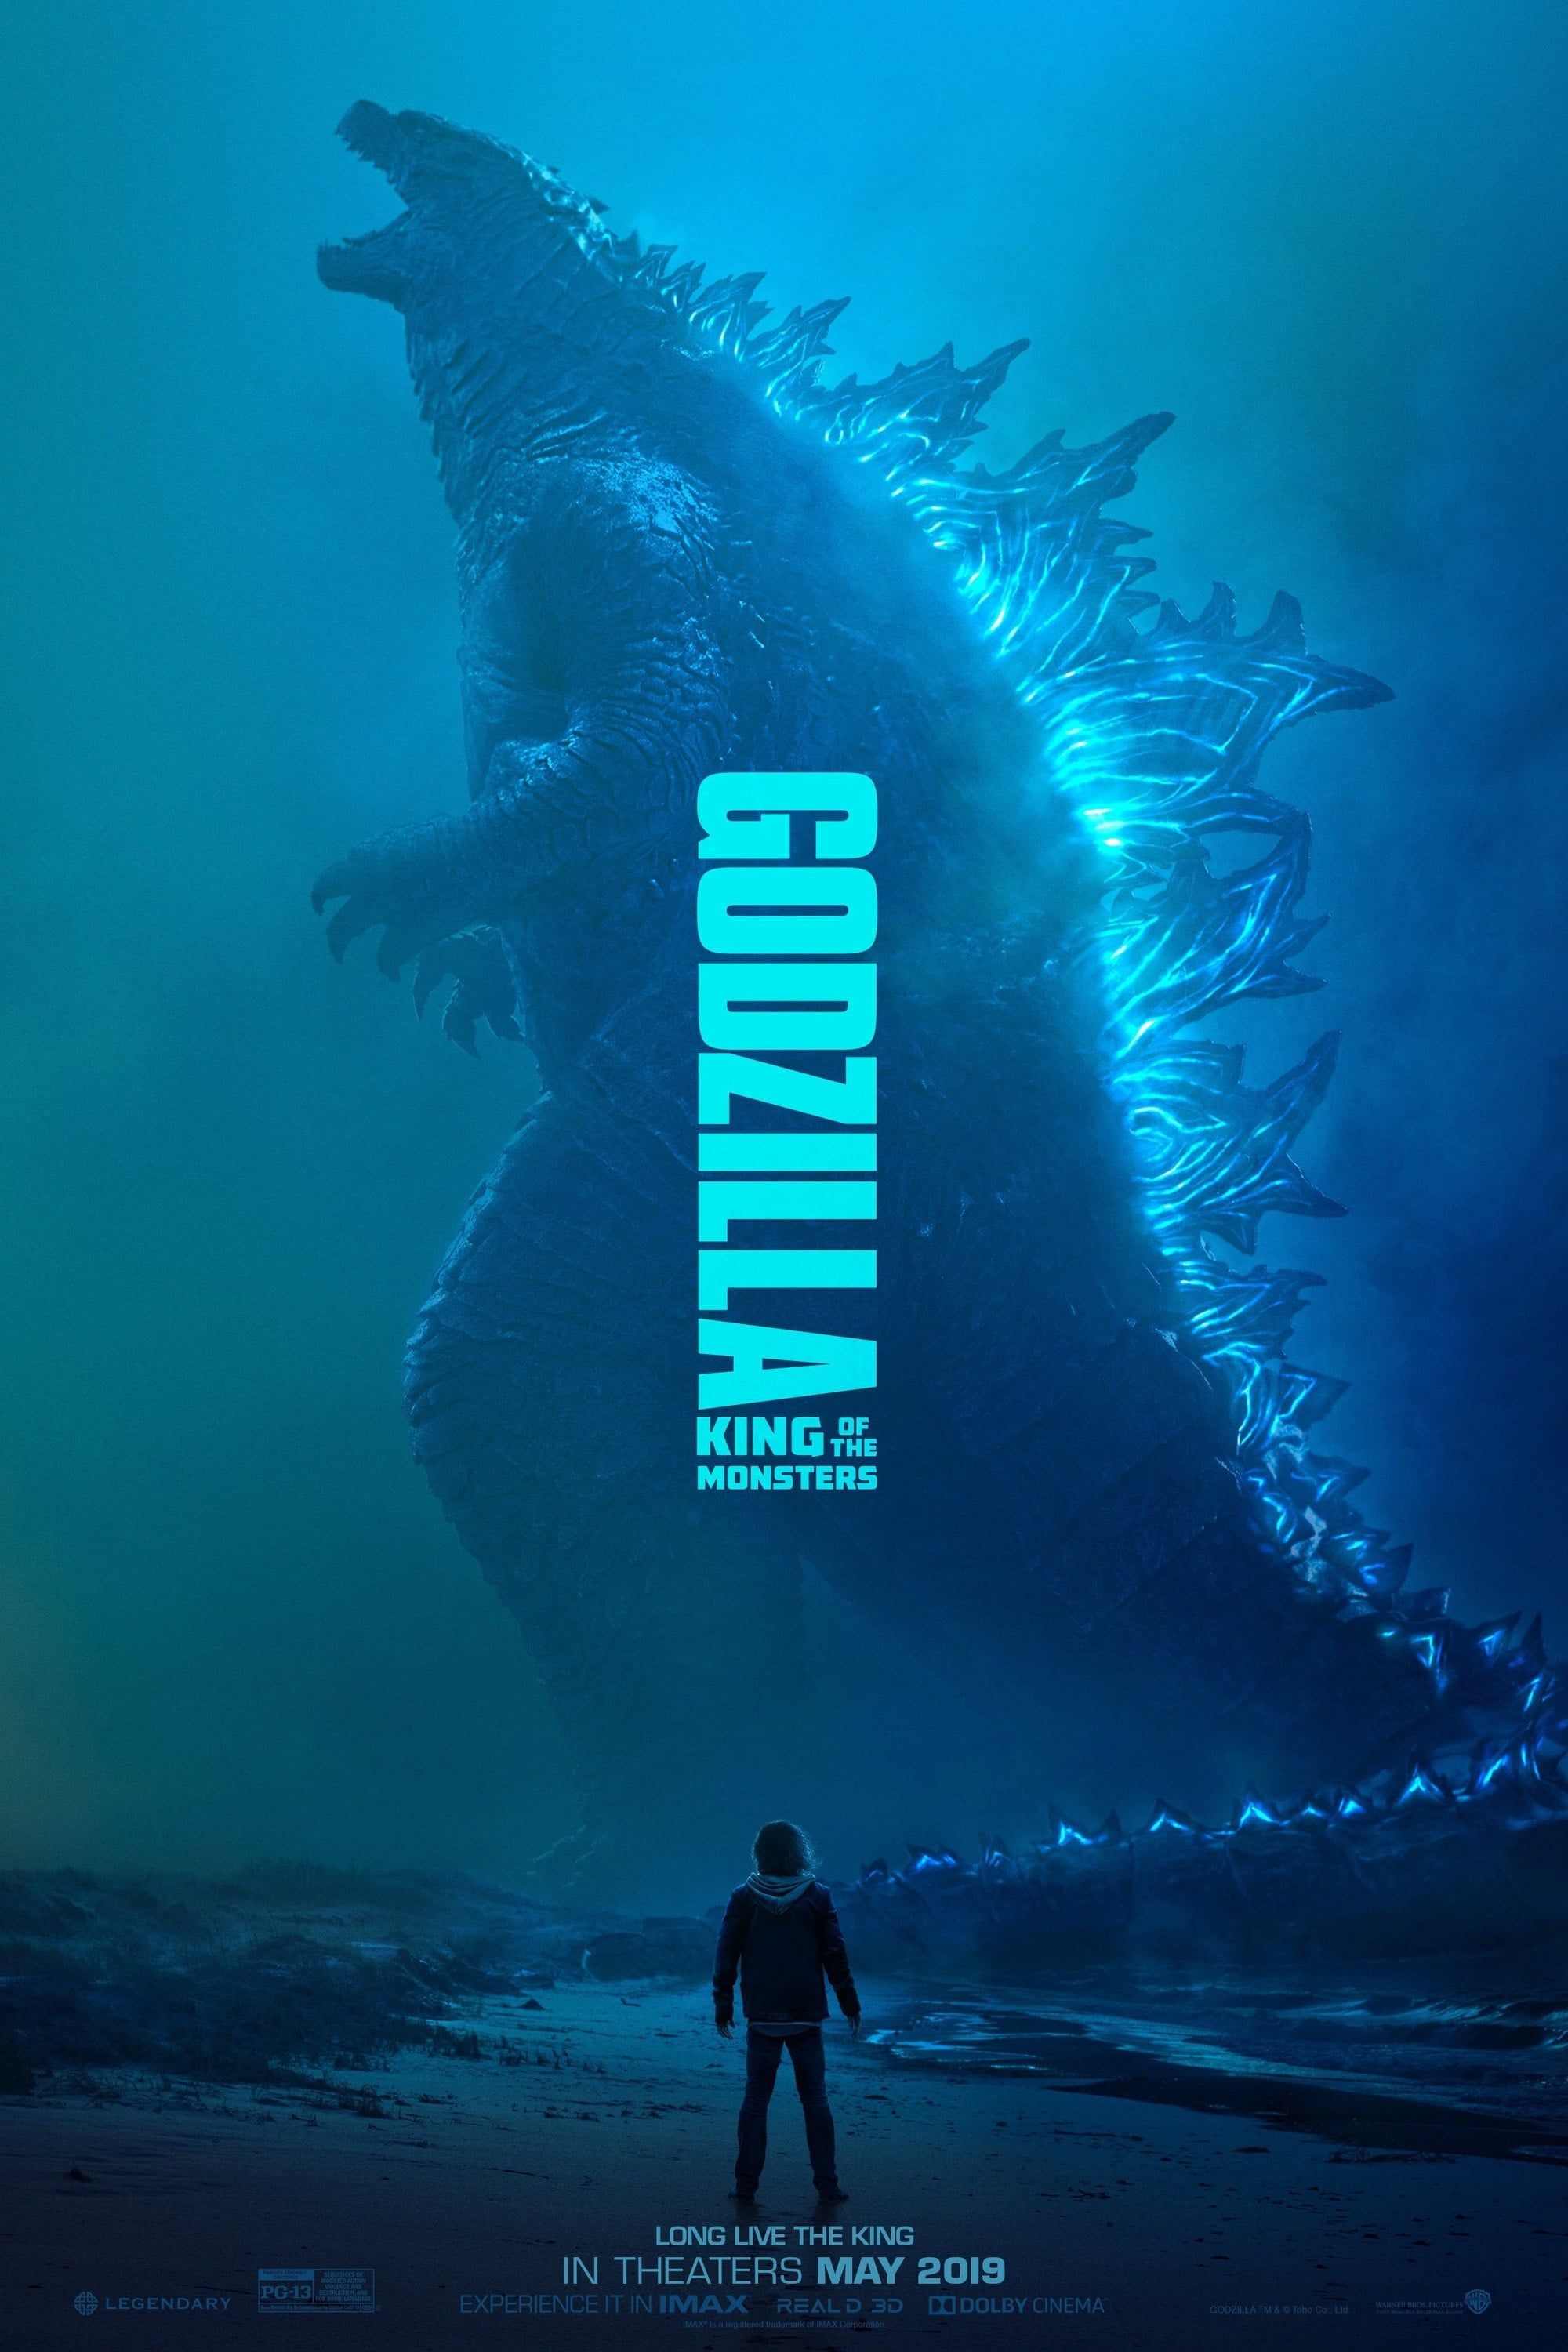 Ver Pelicula Godzilla King Of The Monsters Pelicula Completa Online En Español Subtitulada Godzilla Movie Monsters Free Movies Online